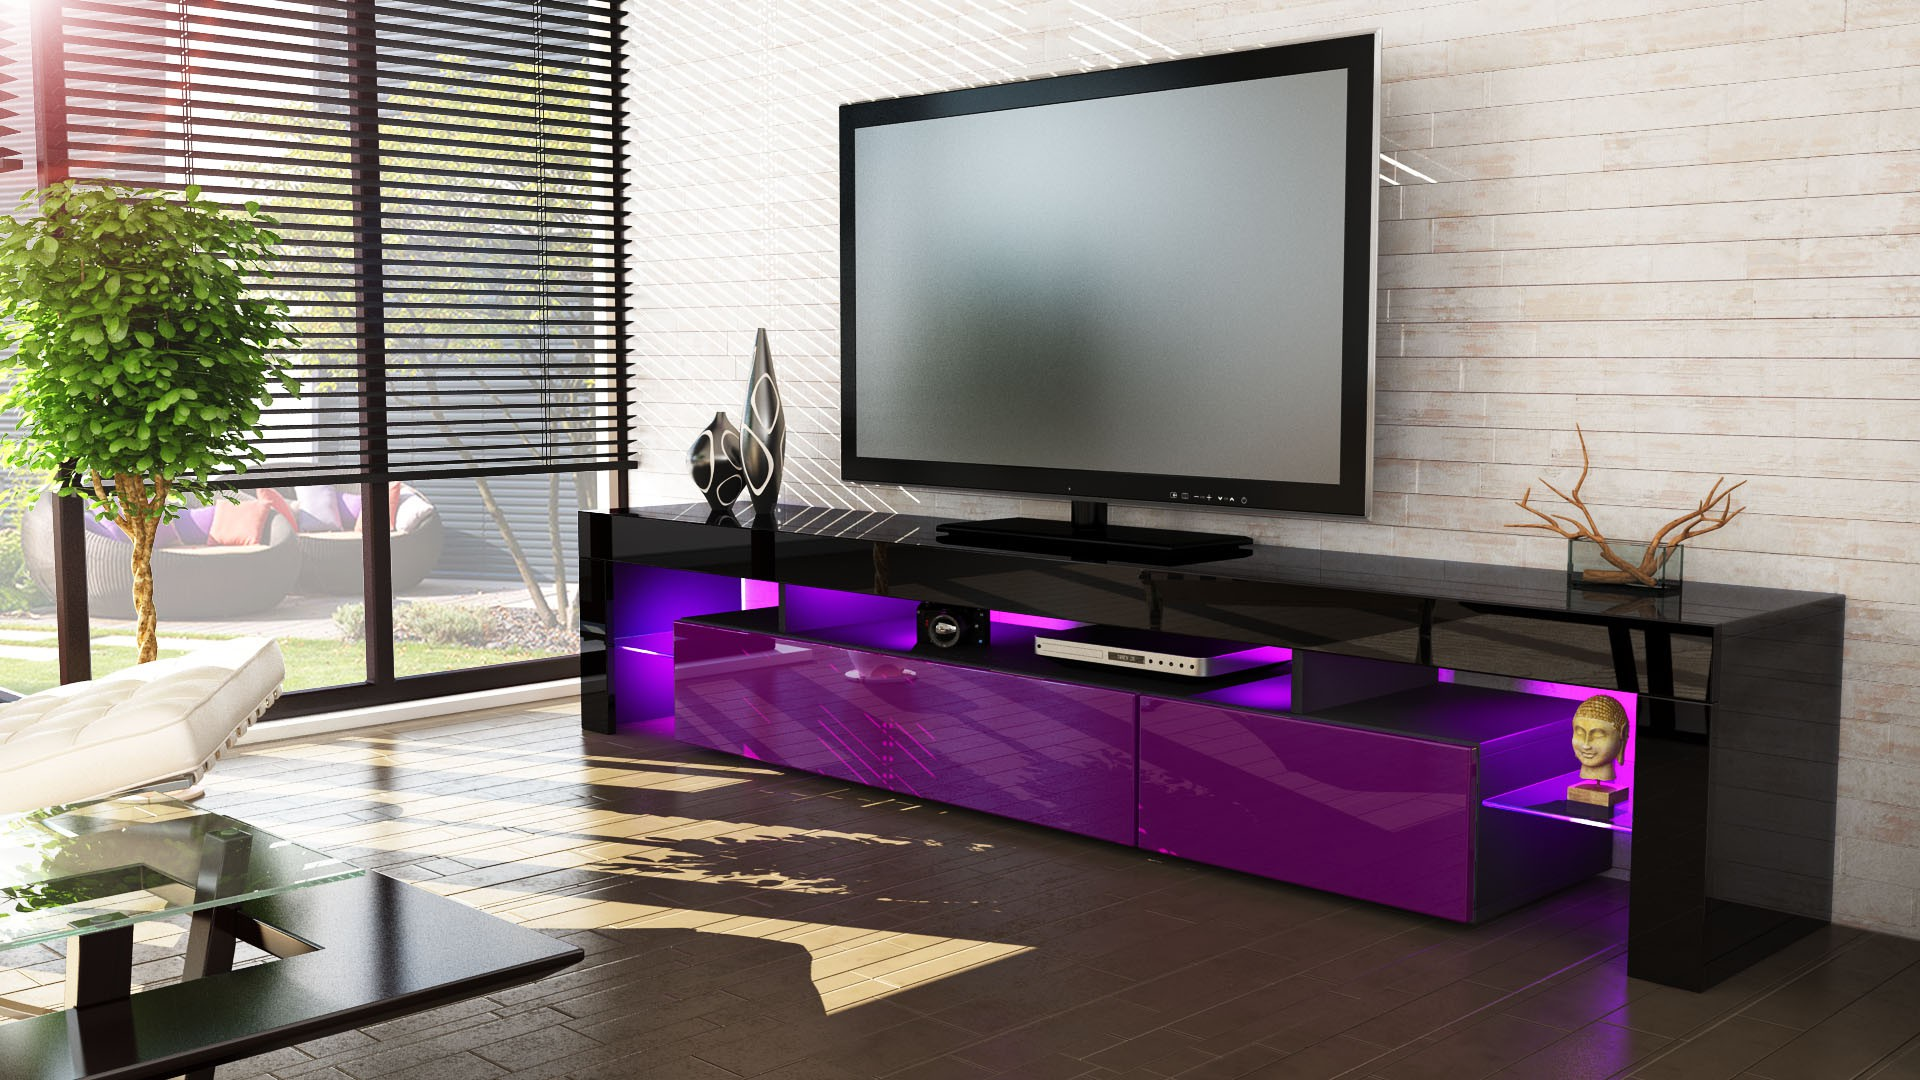 meuble tv noir et violet 189 cm avec led pour meubles tv. Black Bedroom Furniture Sets. Home Design Ideas